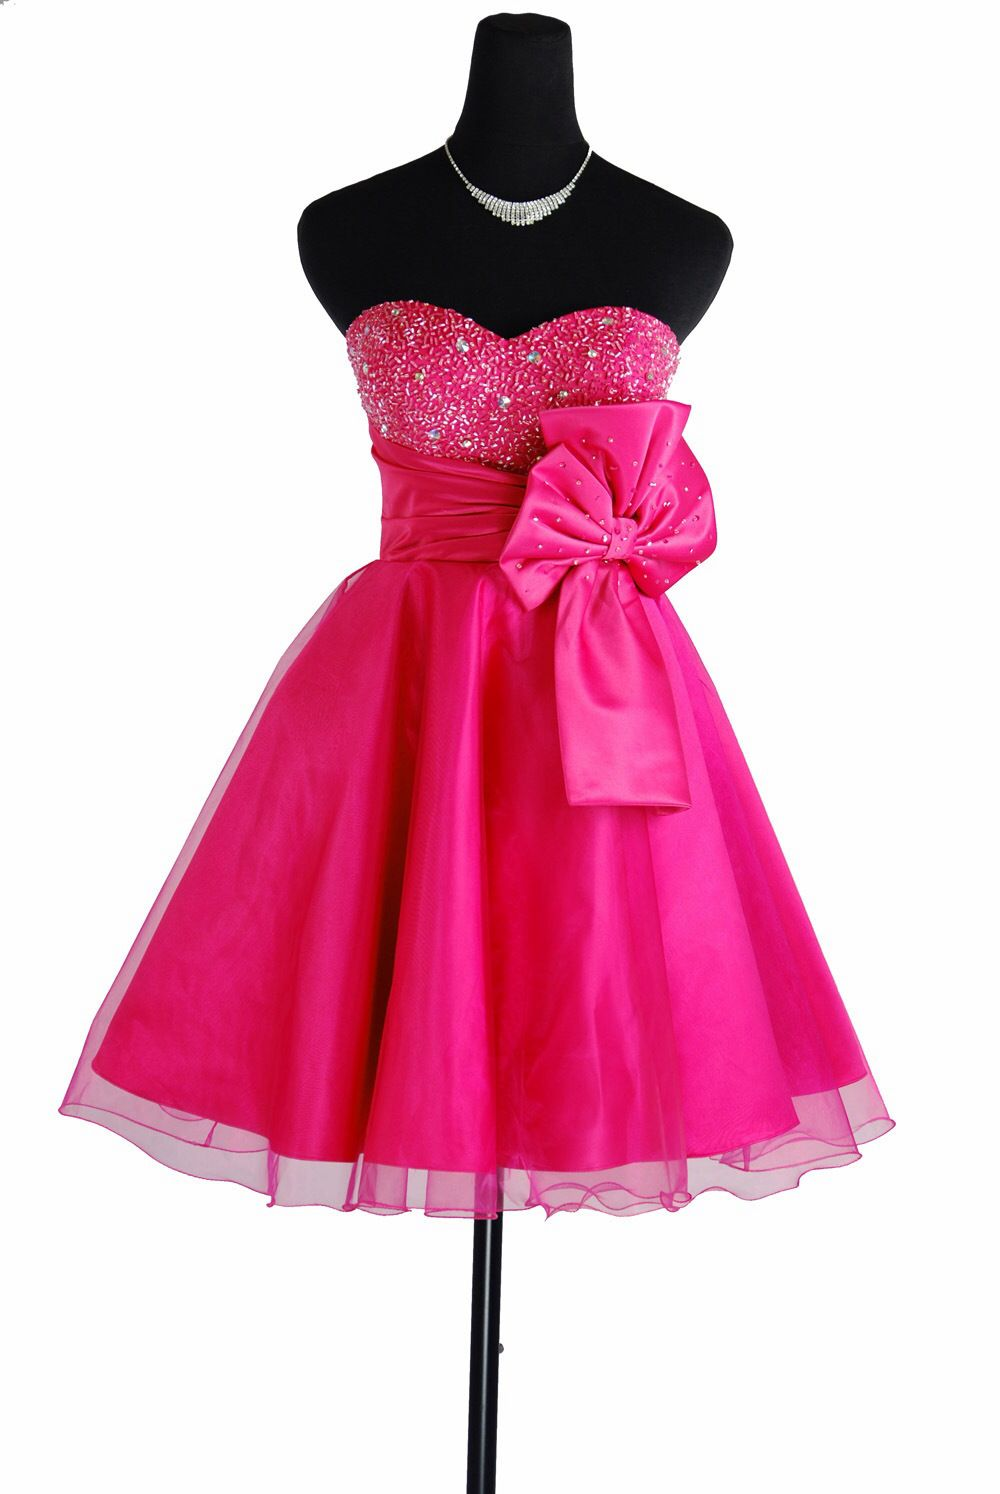 Itus a short hot pink colored dress with a belt with a bow the same